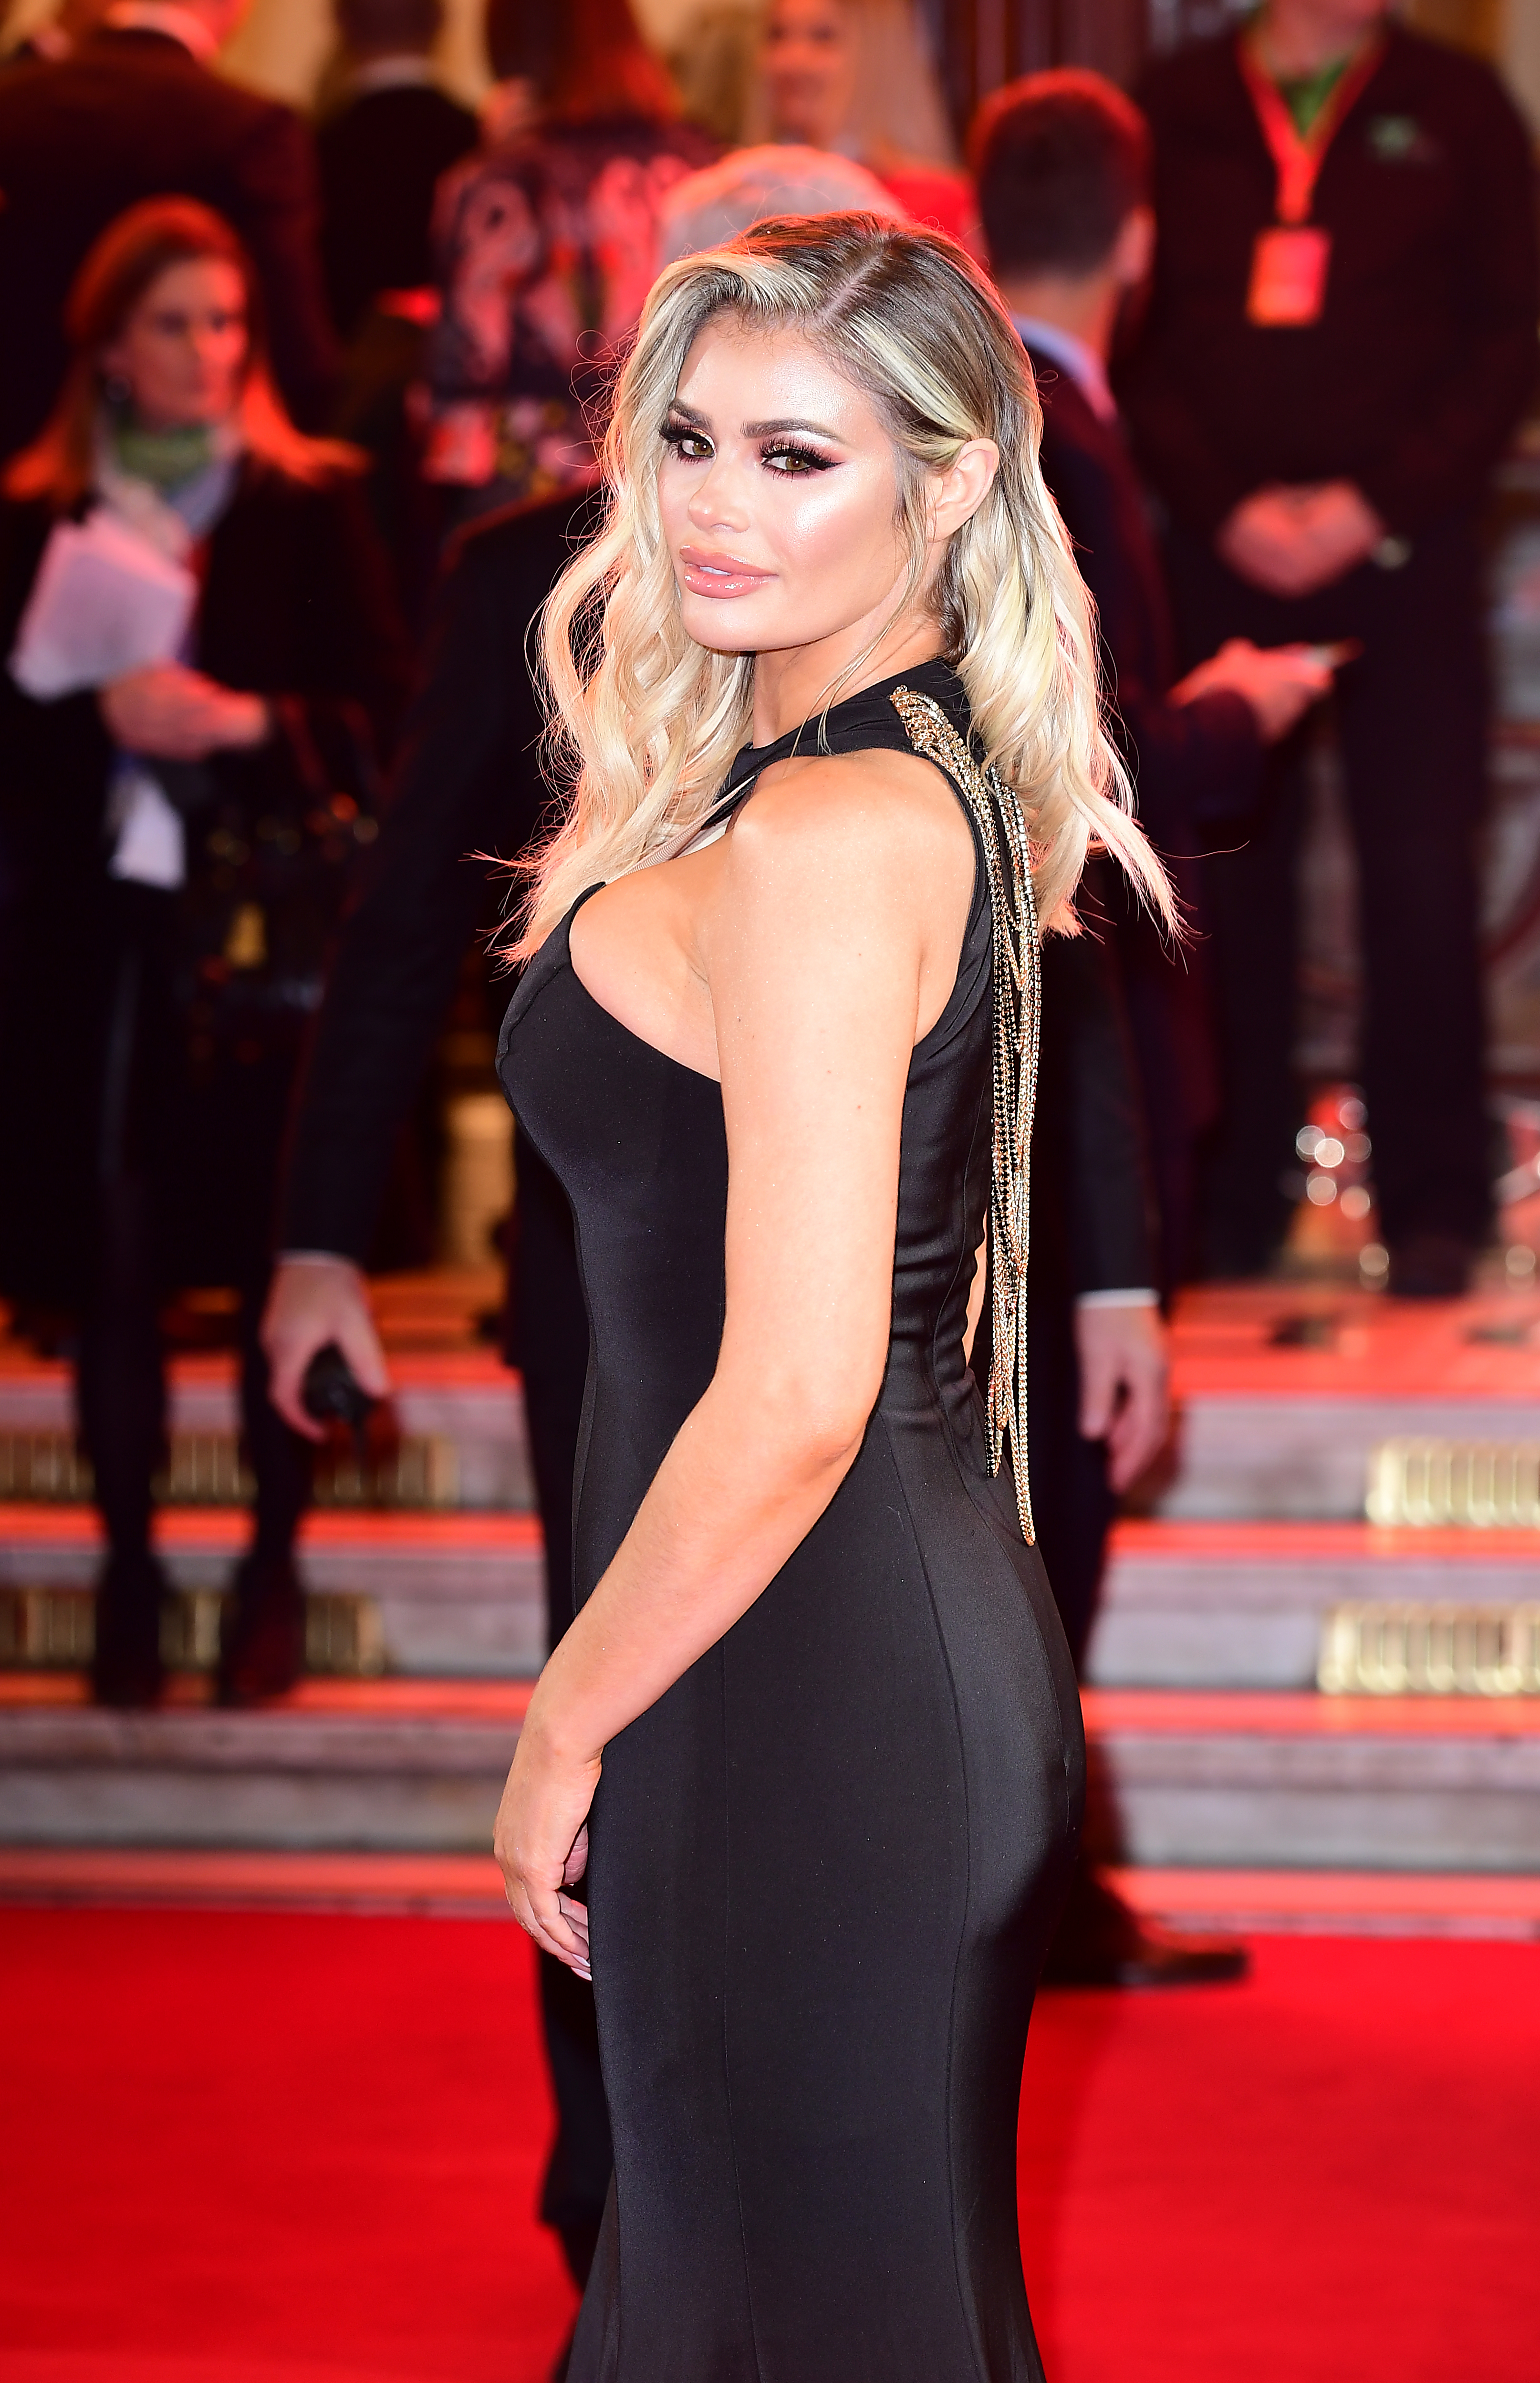 Chloe Sims Nude Photos 12